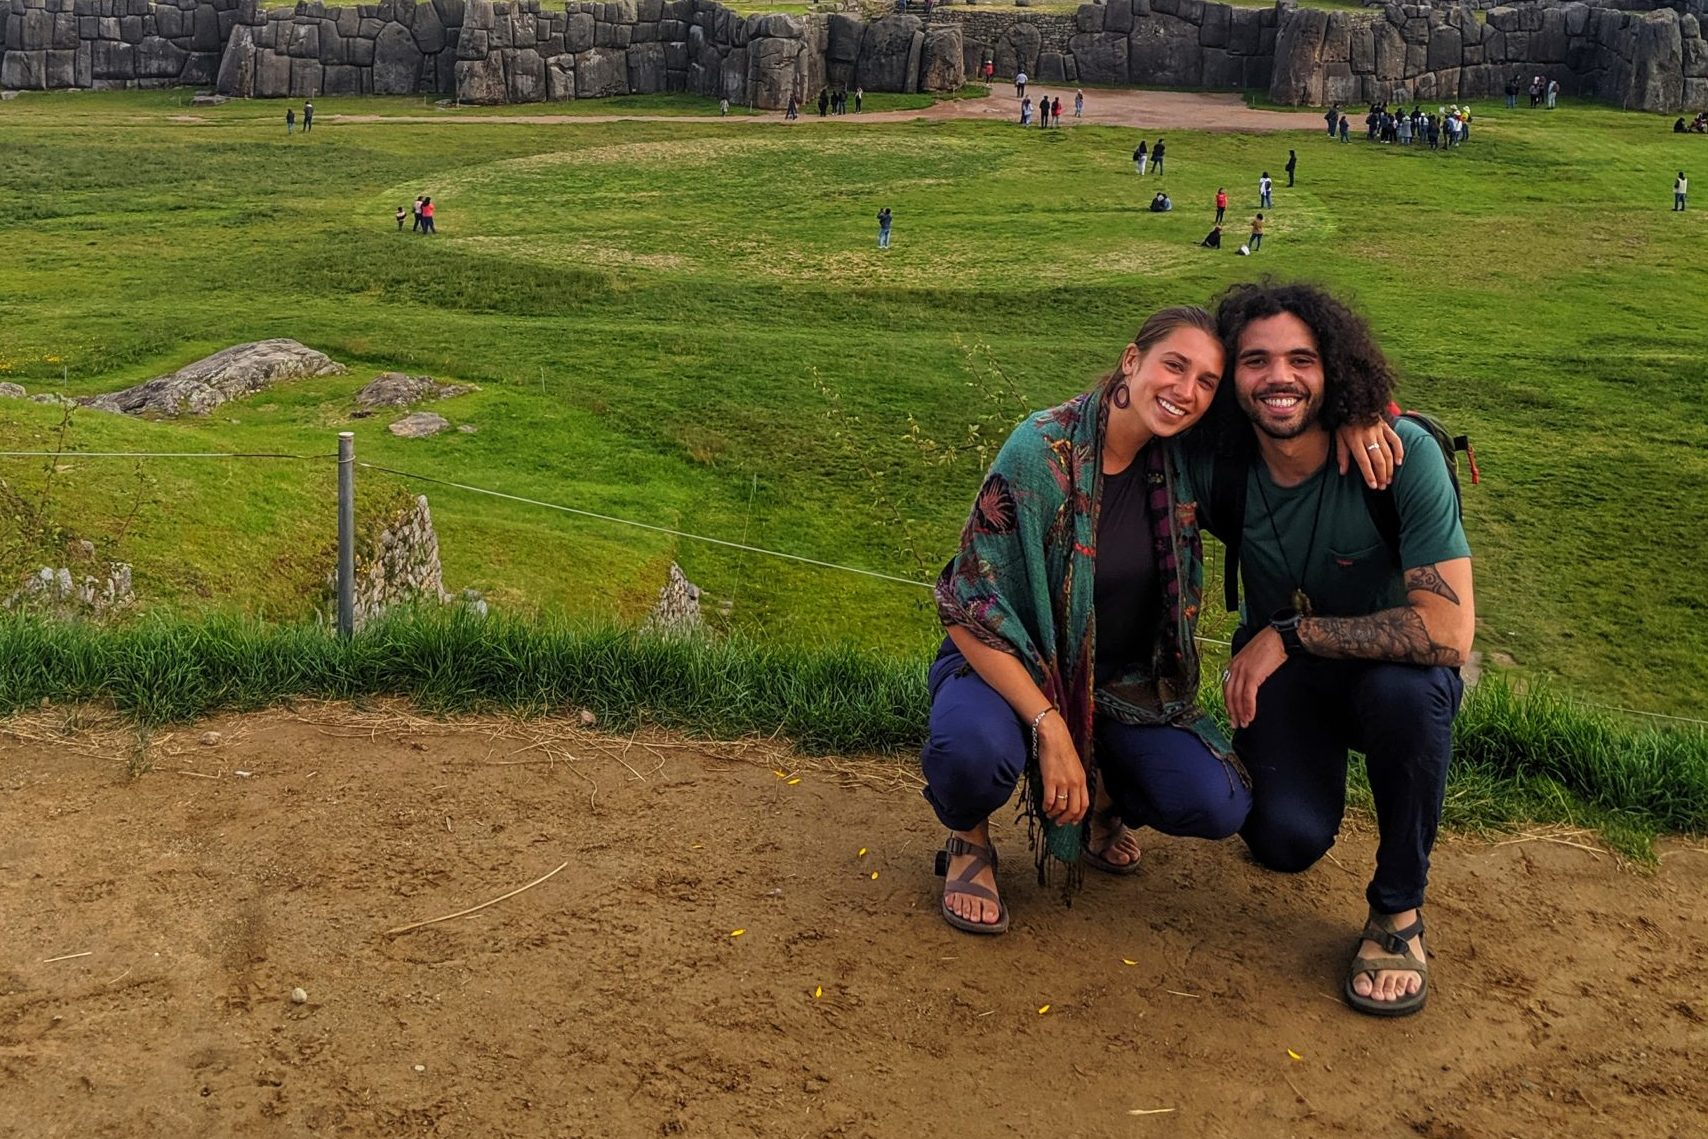 Coloradans Ava Williams and Emil Ortiz at Sacsayhuamán in Cusco, Peru, hours before the Peruvian president announced borders would be shut in 24 hours.